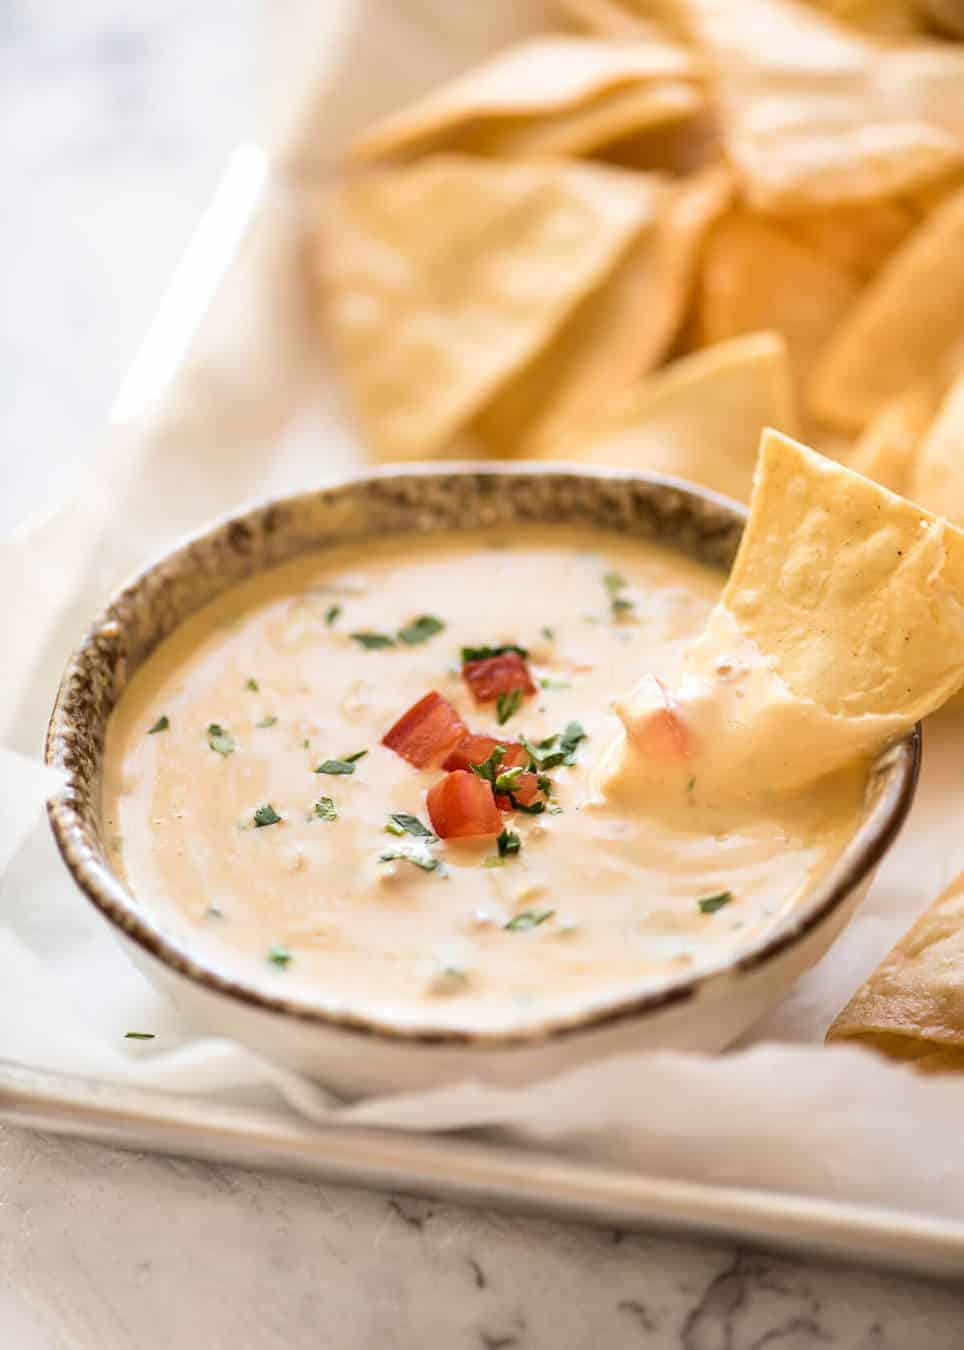 Code cracked: Queso Dip made with real cheese that's ultra silky even when it cools. www.recipetineats.com